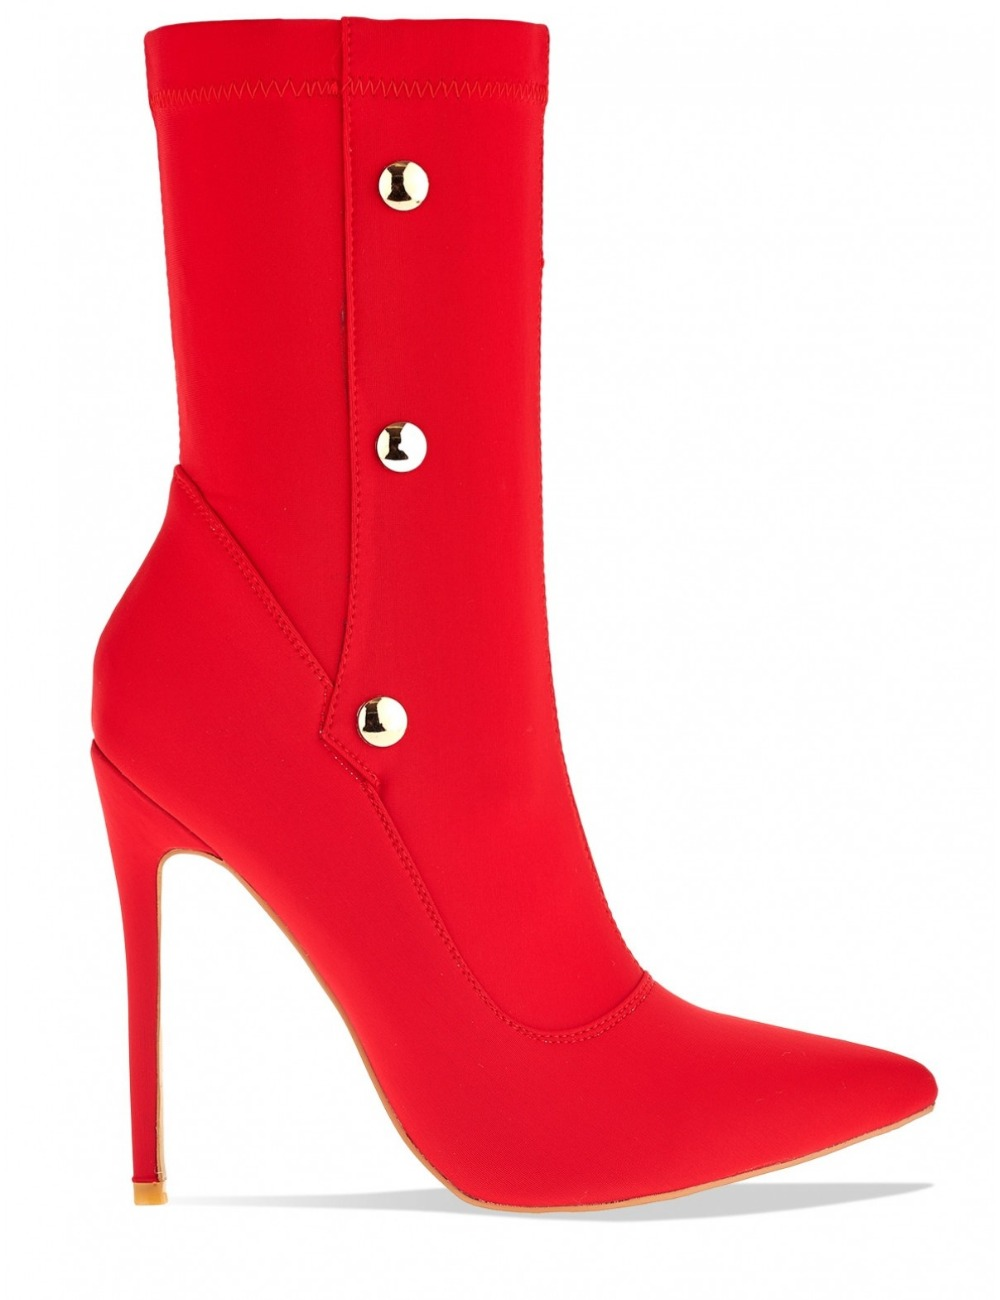 THEMOST New Arrival Stiletto Heel Shoes Europe Celebrity Style Pointy Closed Toe Lycra Stretch Sock Boots